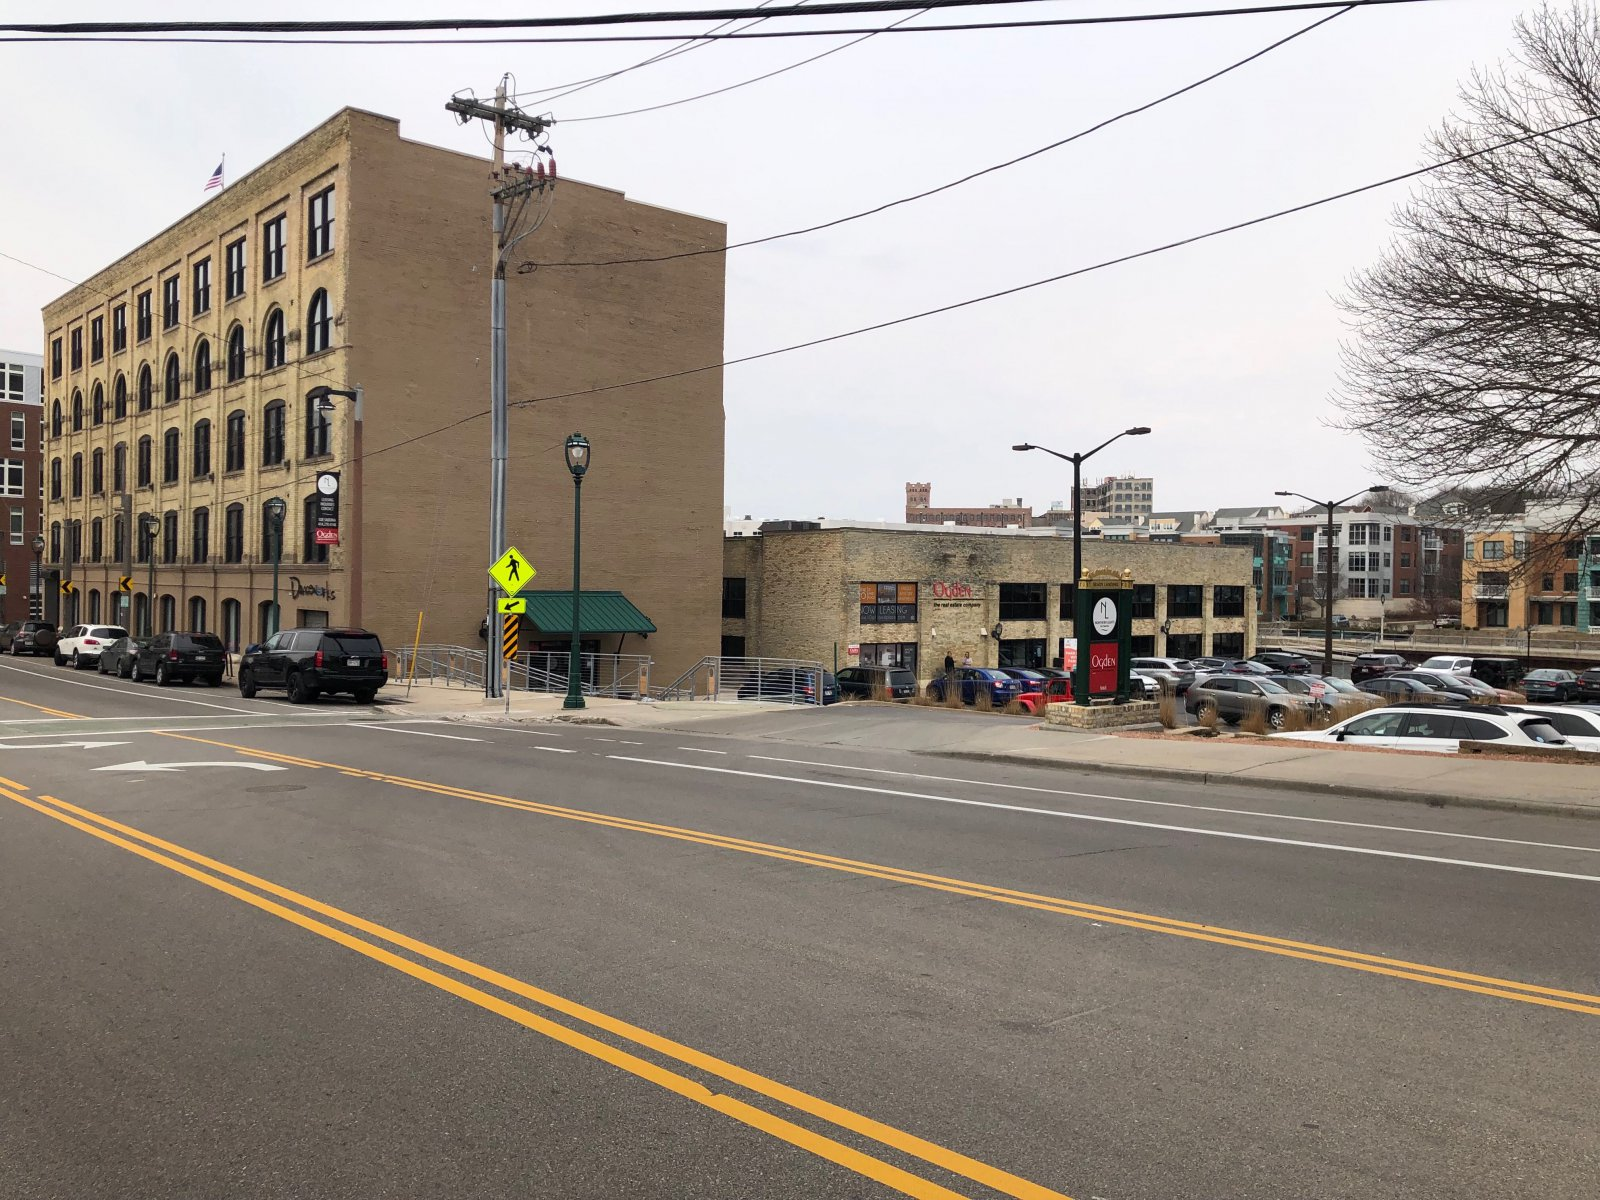 Ogden\'s headquarters is across the street from the site of a proposed five-story, 76-unit apartment building